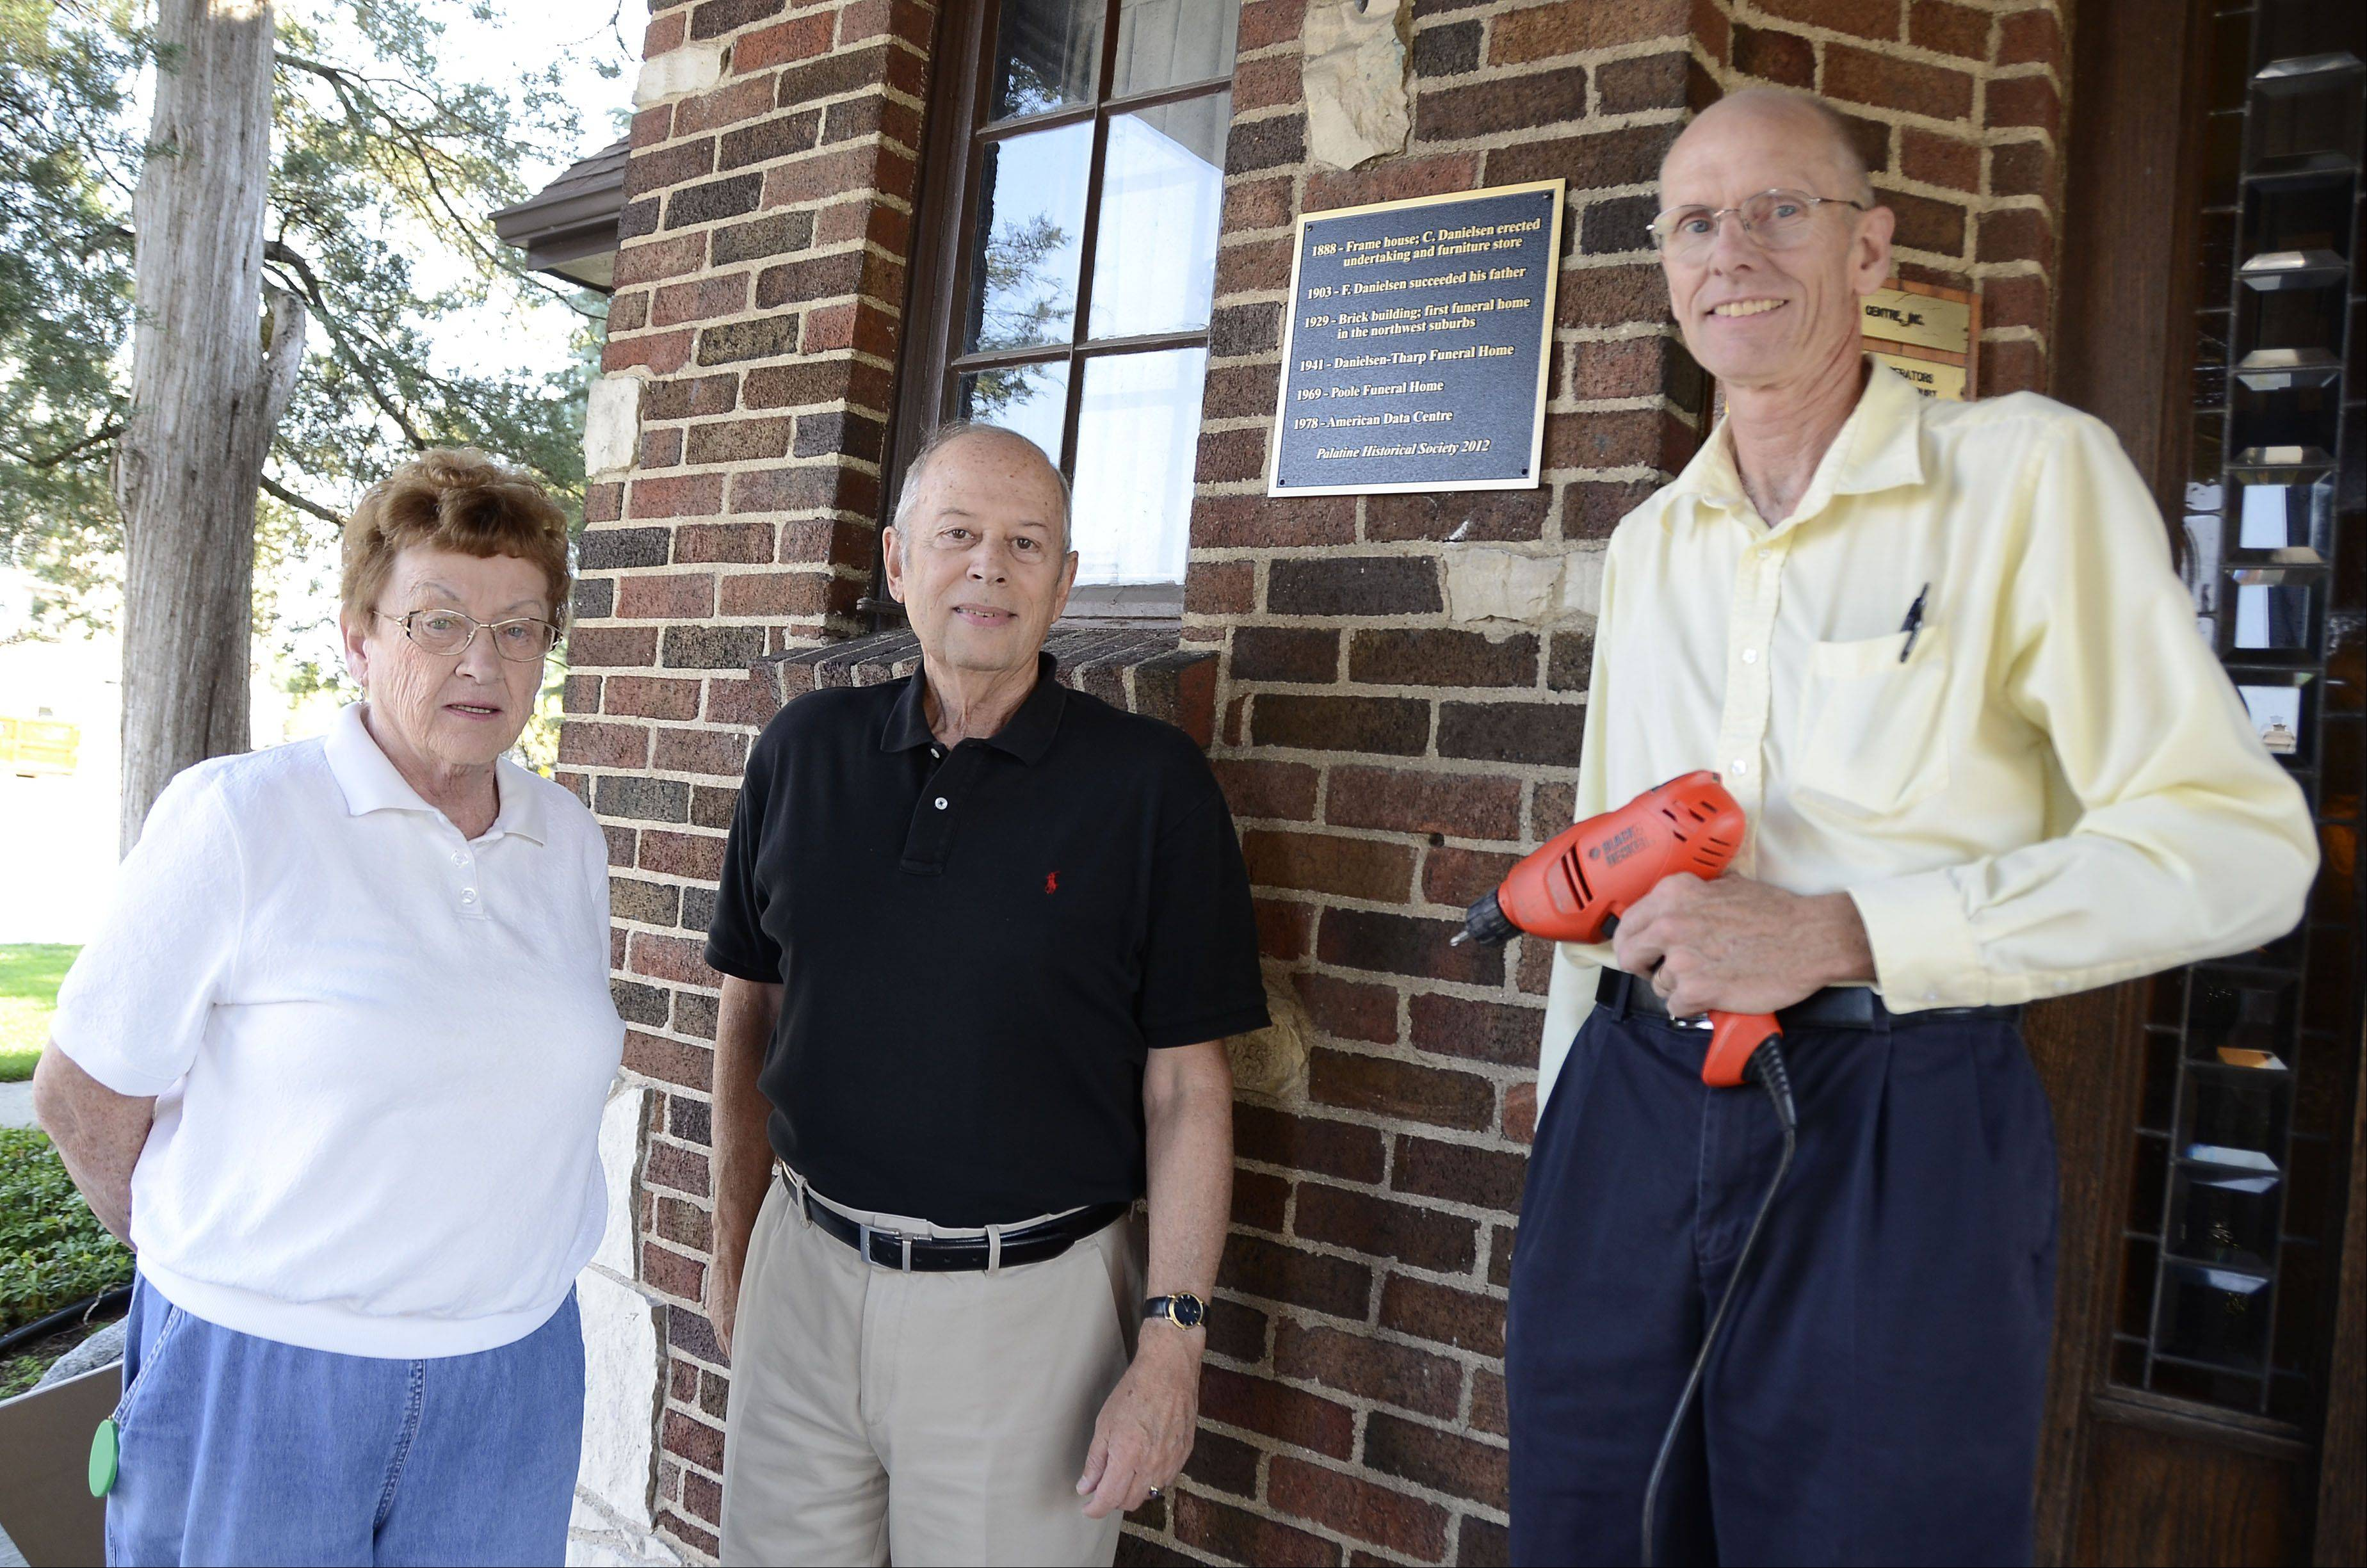 The Palatine Historical Society is erecting several plaques at sites of historical significance. Director Marilyn Pedersen, from left, American Data Centre Vice President Ronald Blum and historian David Hammer stand by the plaque they installed on Blum's building at 25 W. Palatine Road. Before the brick building was built in 1929 to house the area's first funeral home, it was a furniture store dating back to 1888.